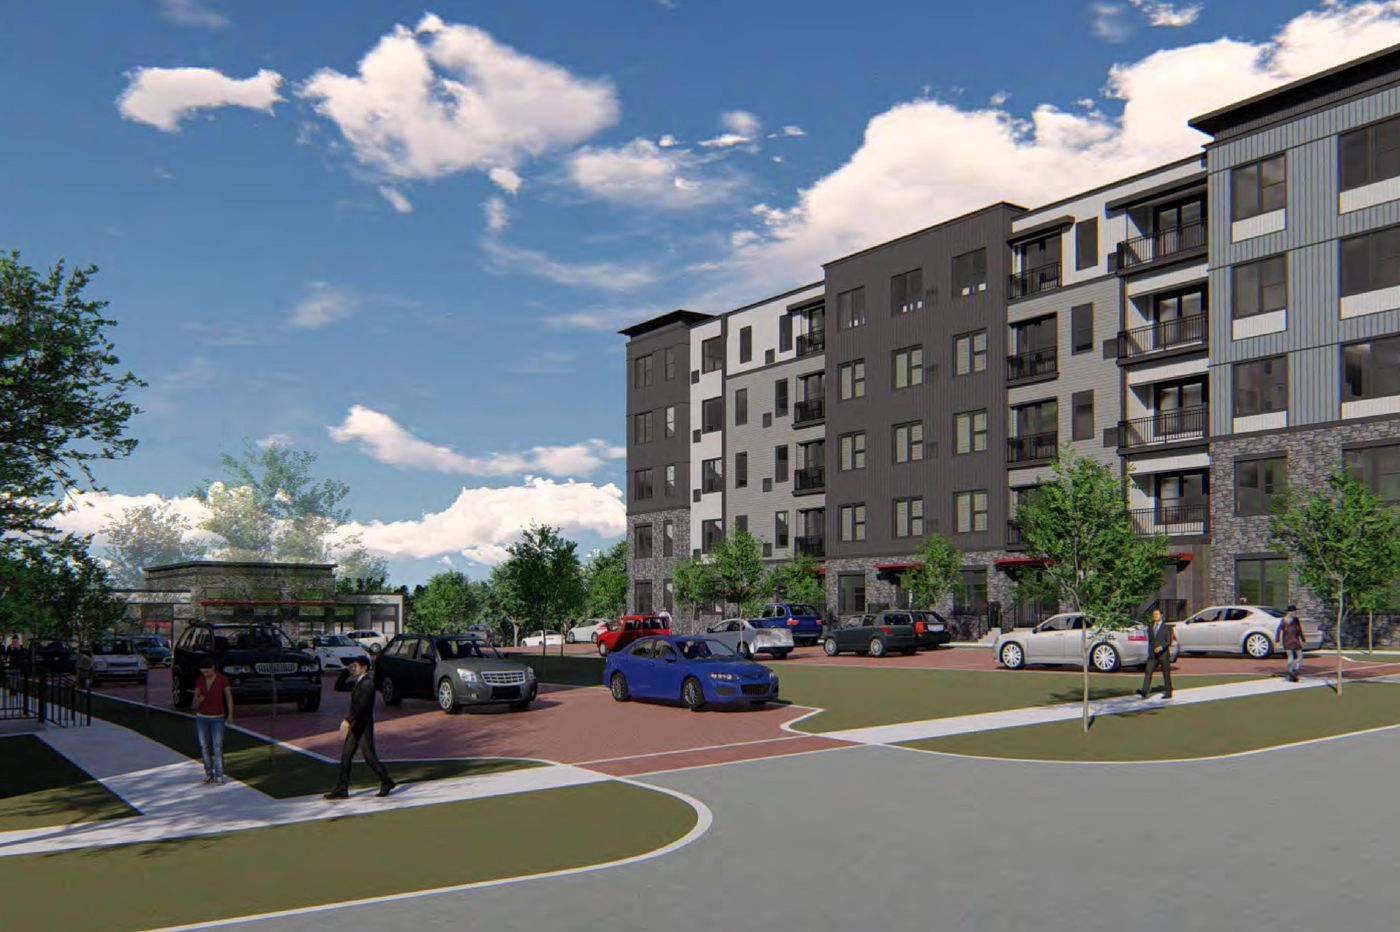 Sprawling apartment complex planned for Northeast Philly site near former Franklin Mills